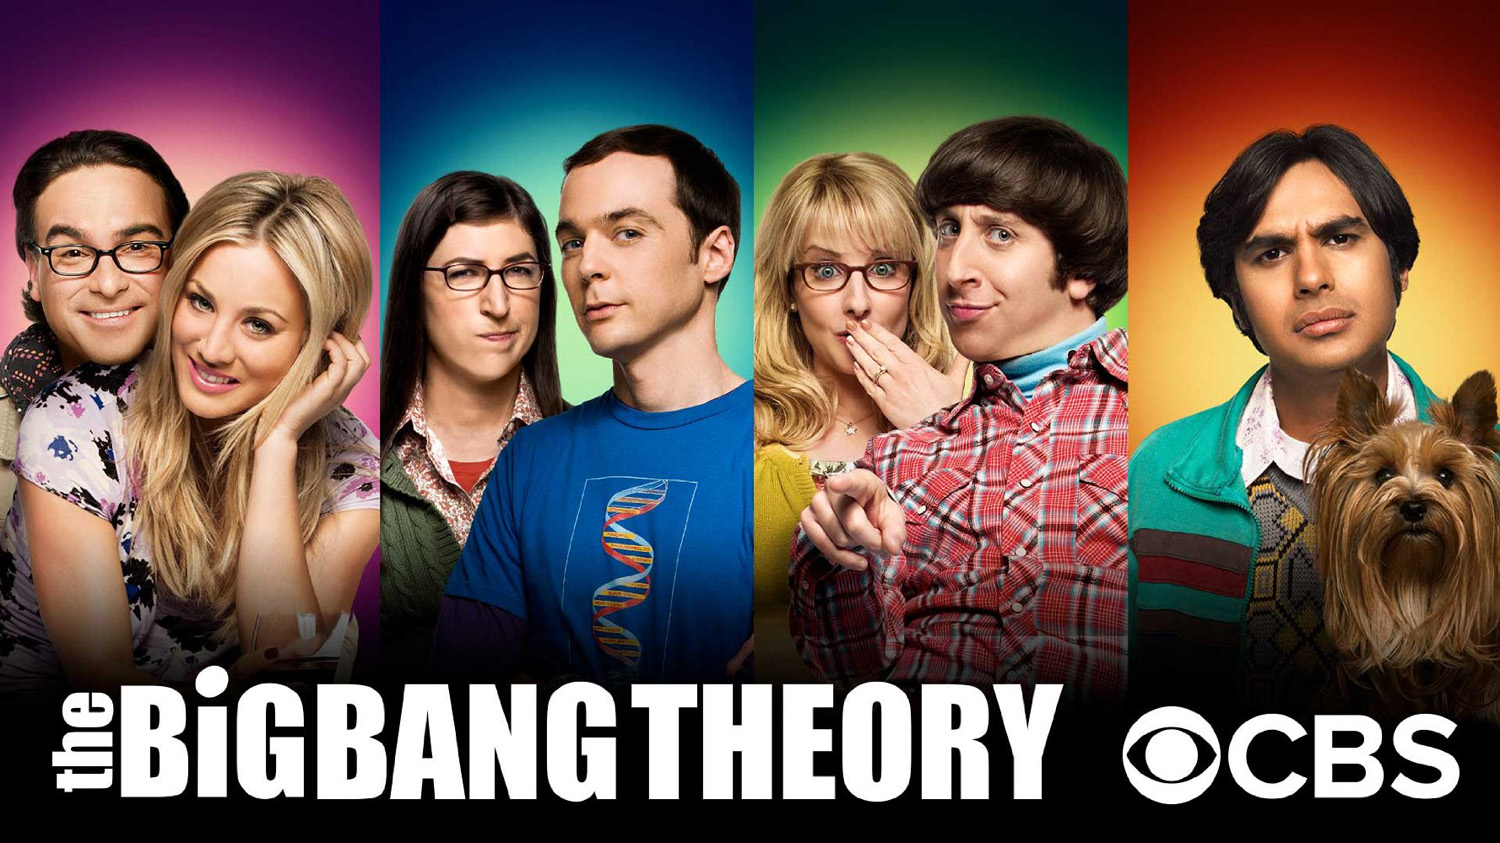 The Big Bang Theory airs on CBS. Photo courtesy of IMDB.